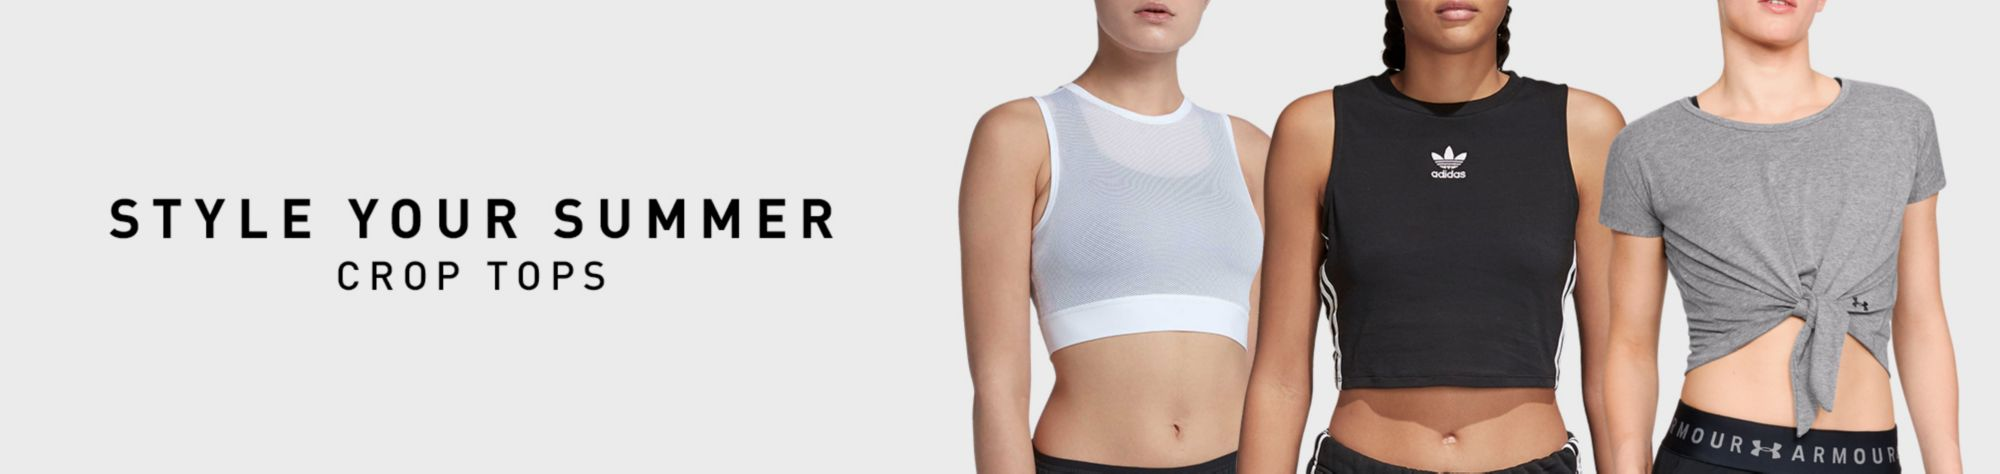 Style Your Summer Crop Tops